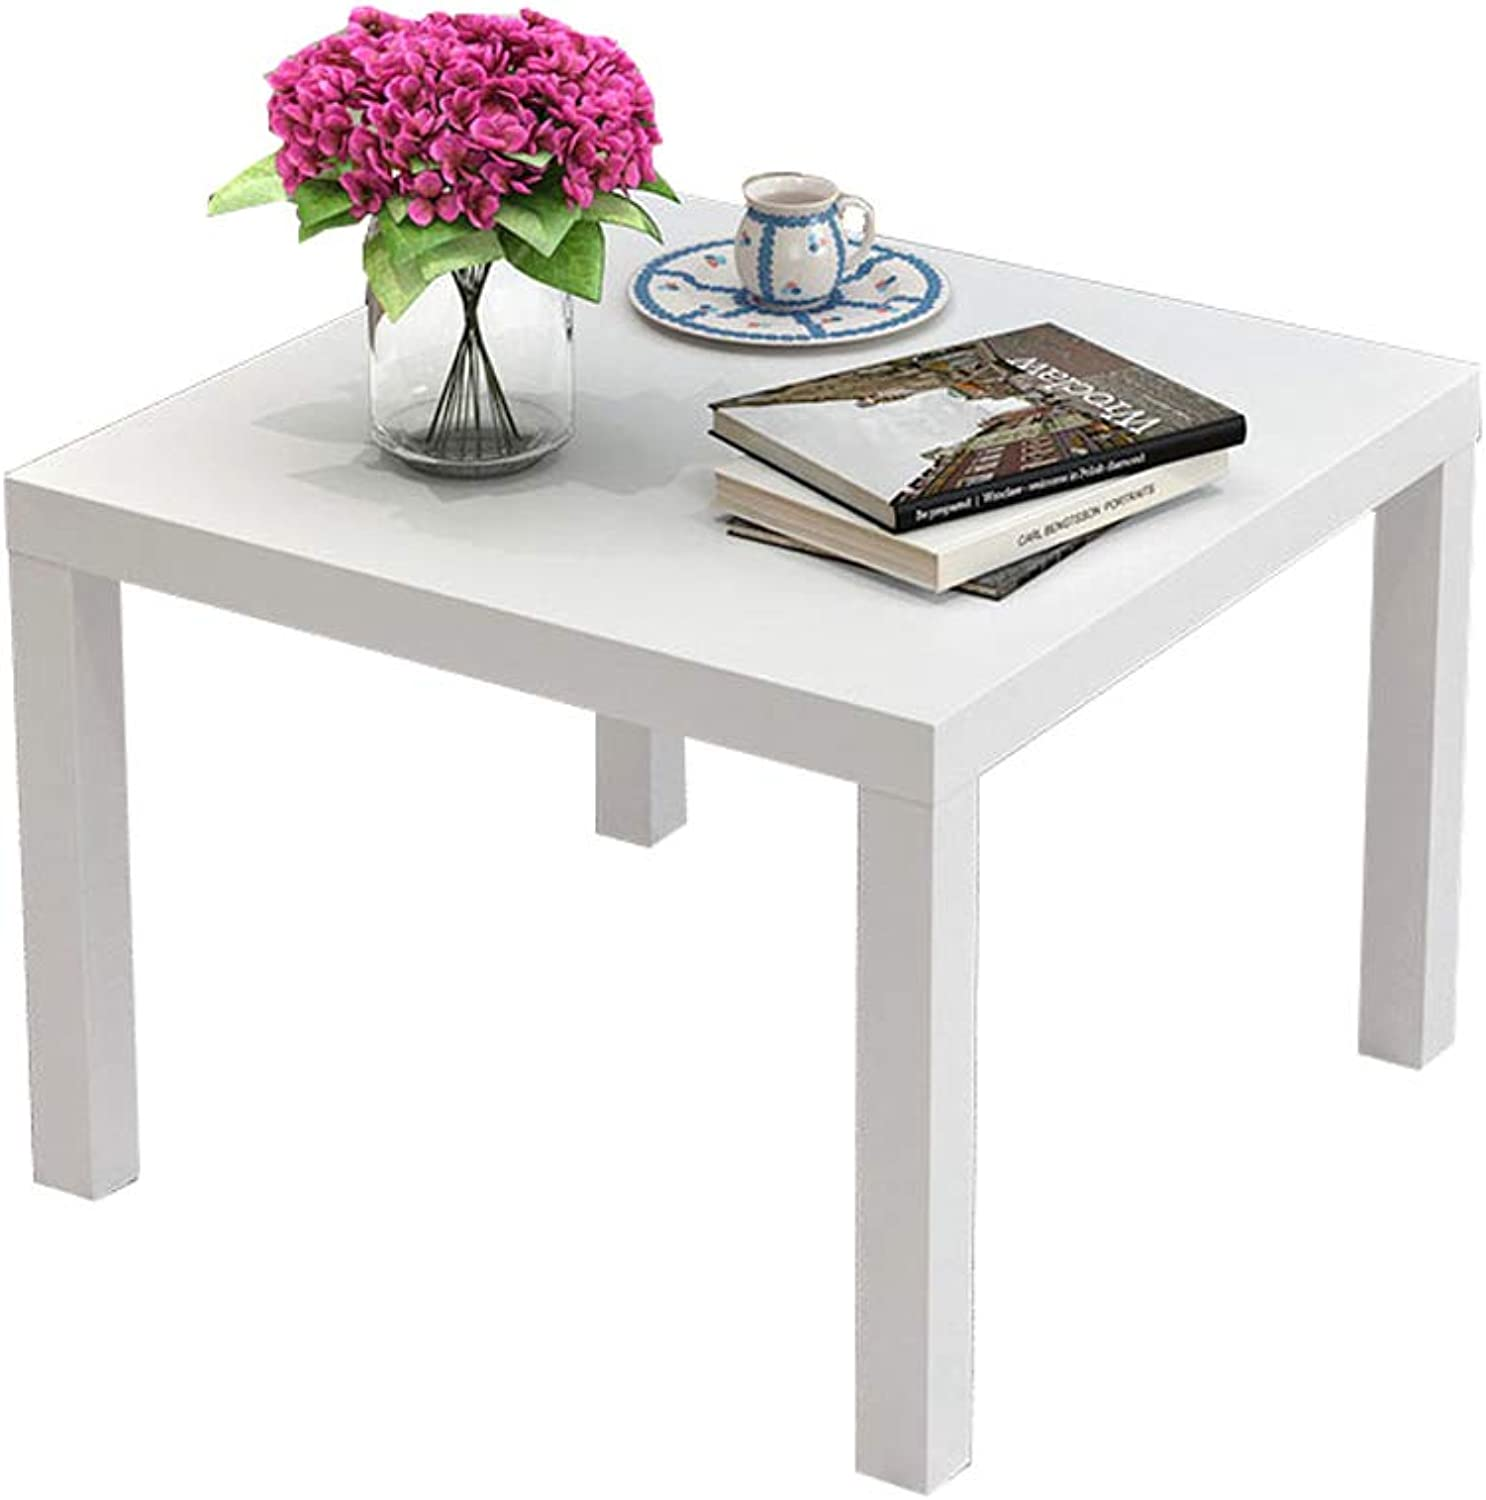 Coffee Table, White Nordic Square Table Modern Minimalist Living Room Tea Table Creative Furniture Tea Table Multifunctional Coffee Table (Size   40  37cm)